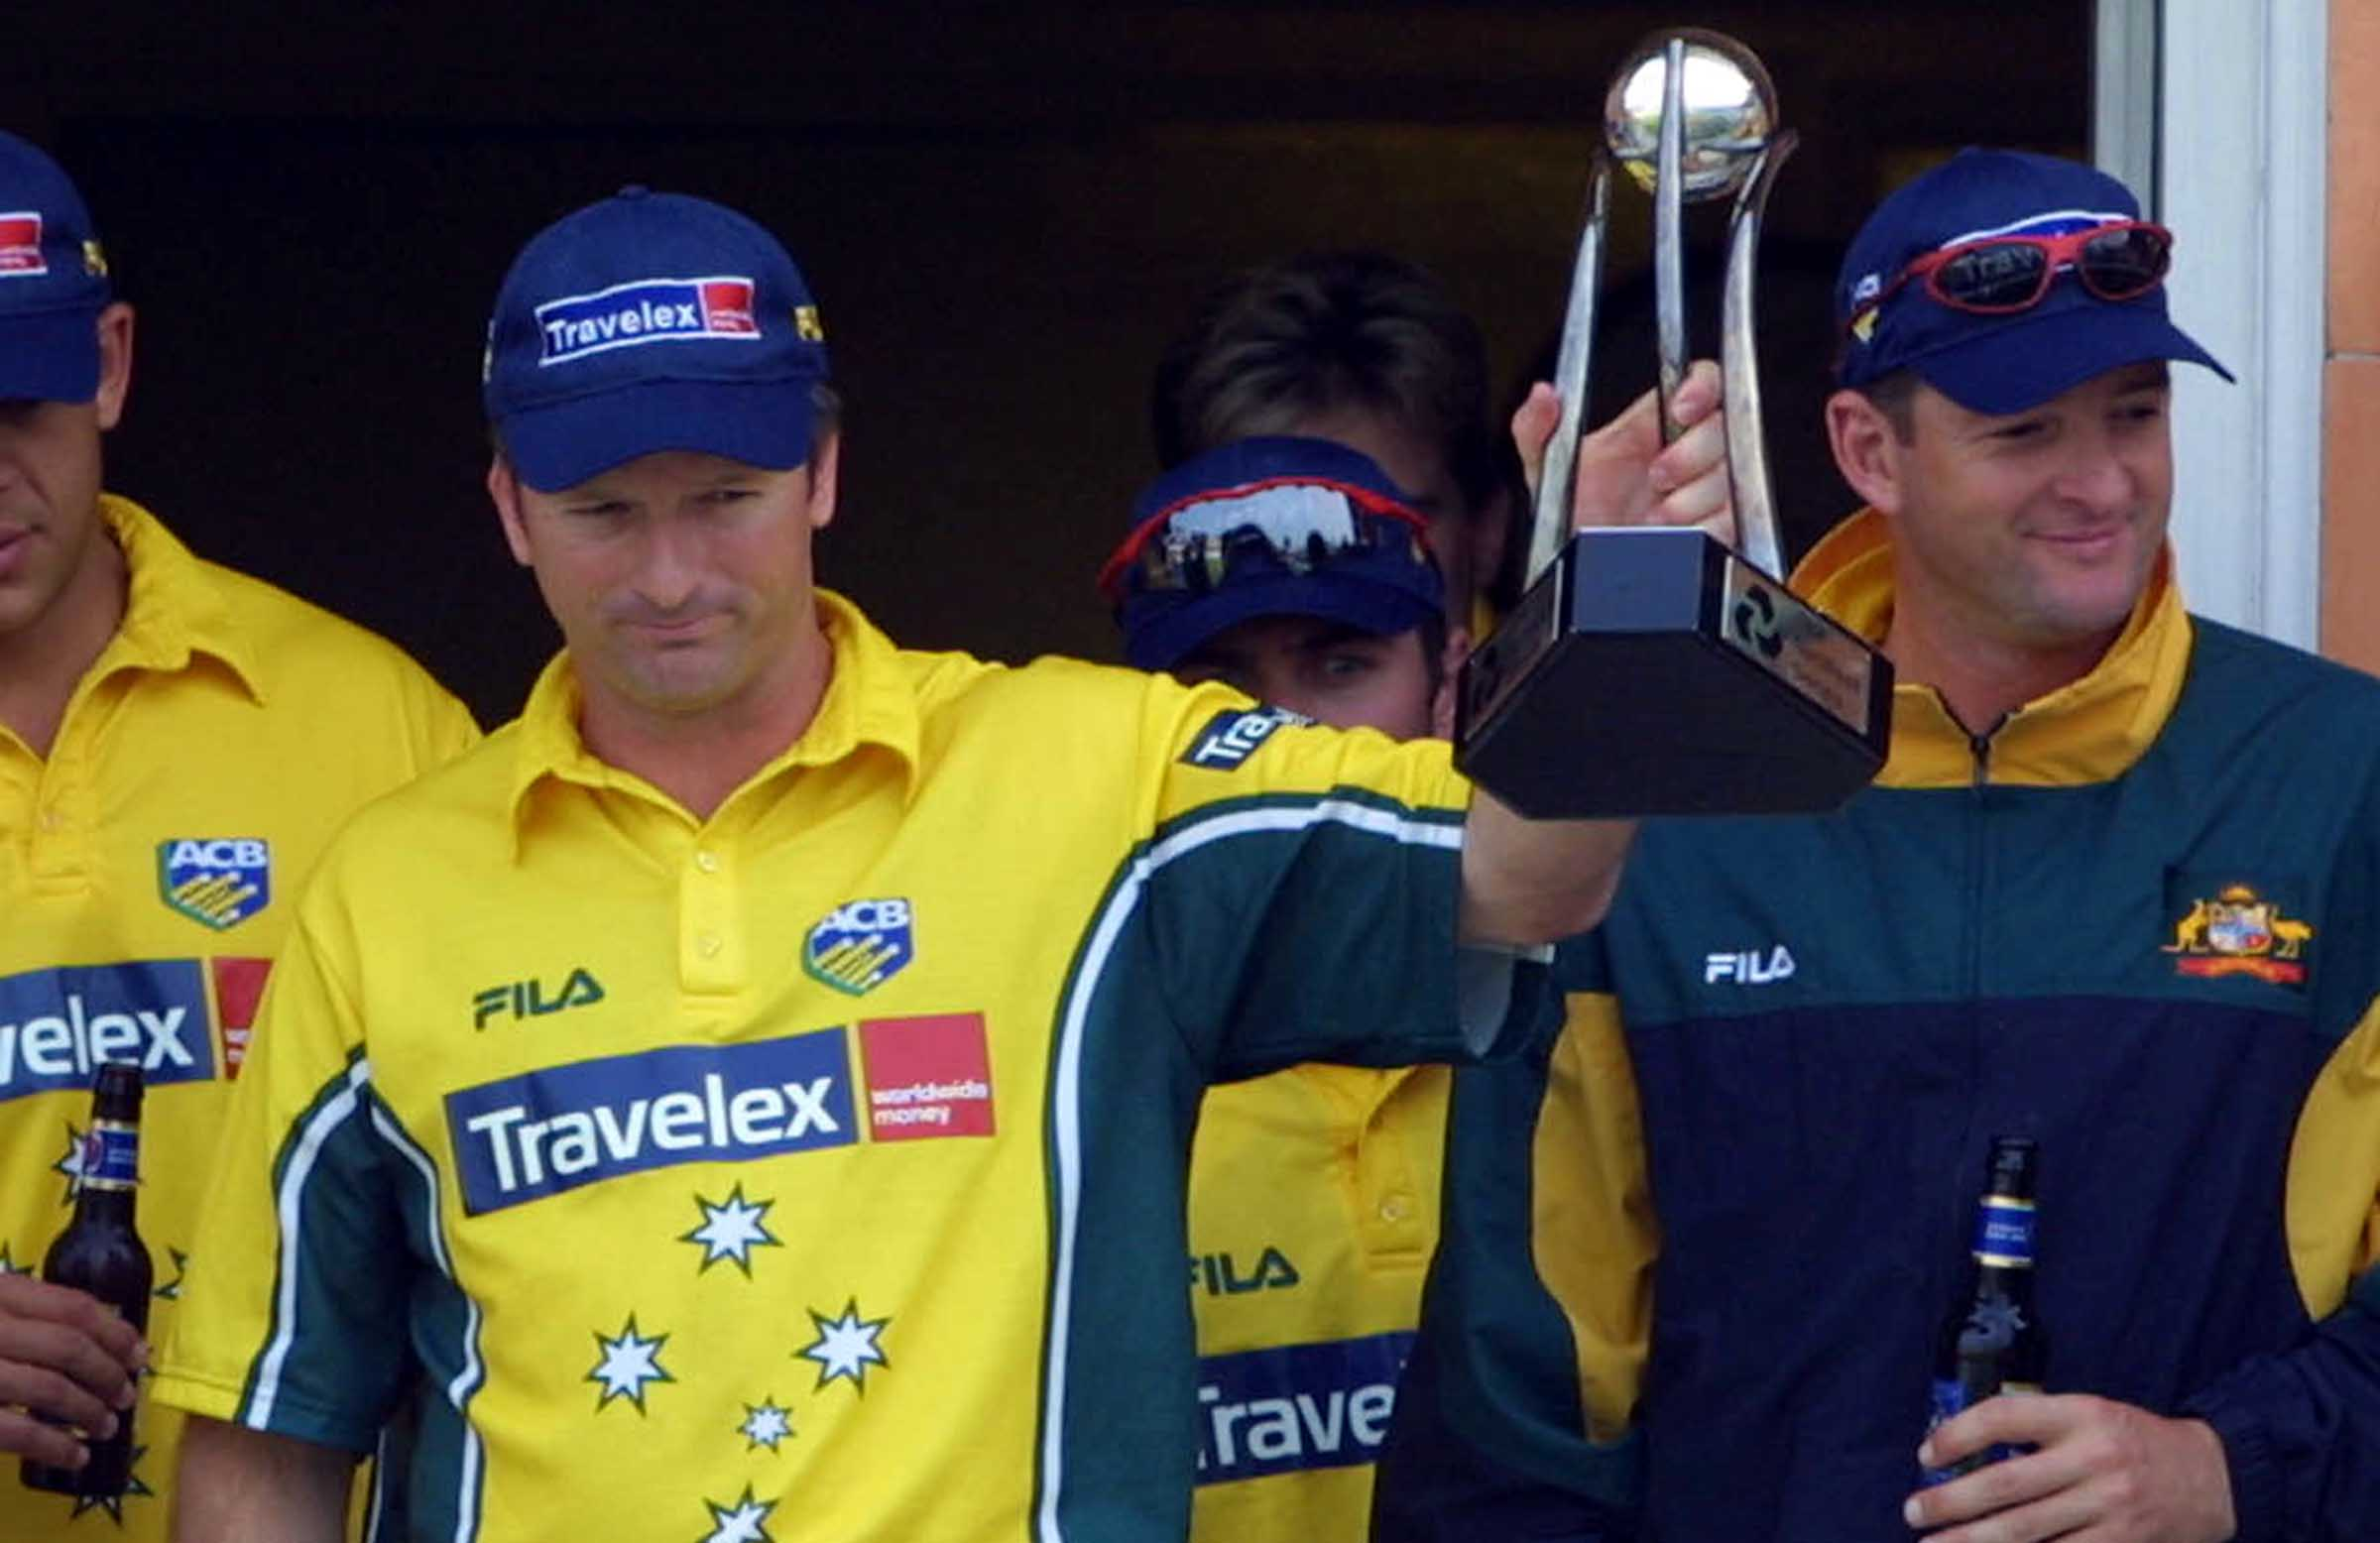 Lord's 2001: Steve and Mark Waugh after their final ODI series success // Getty